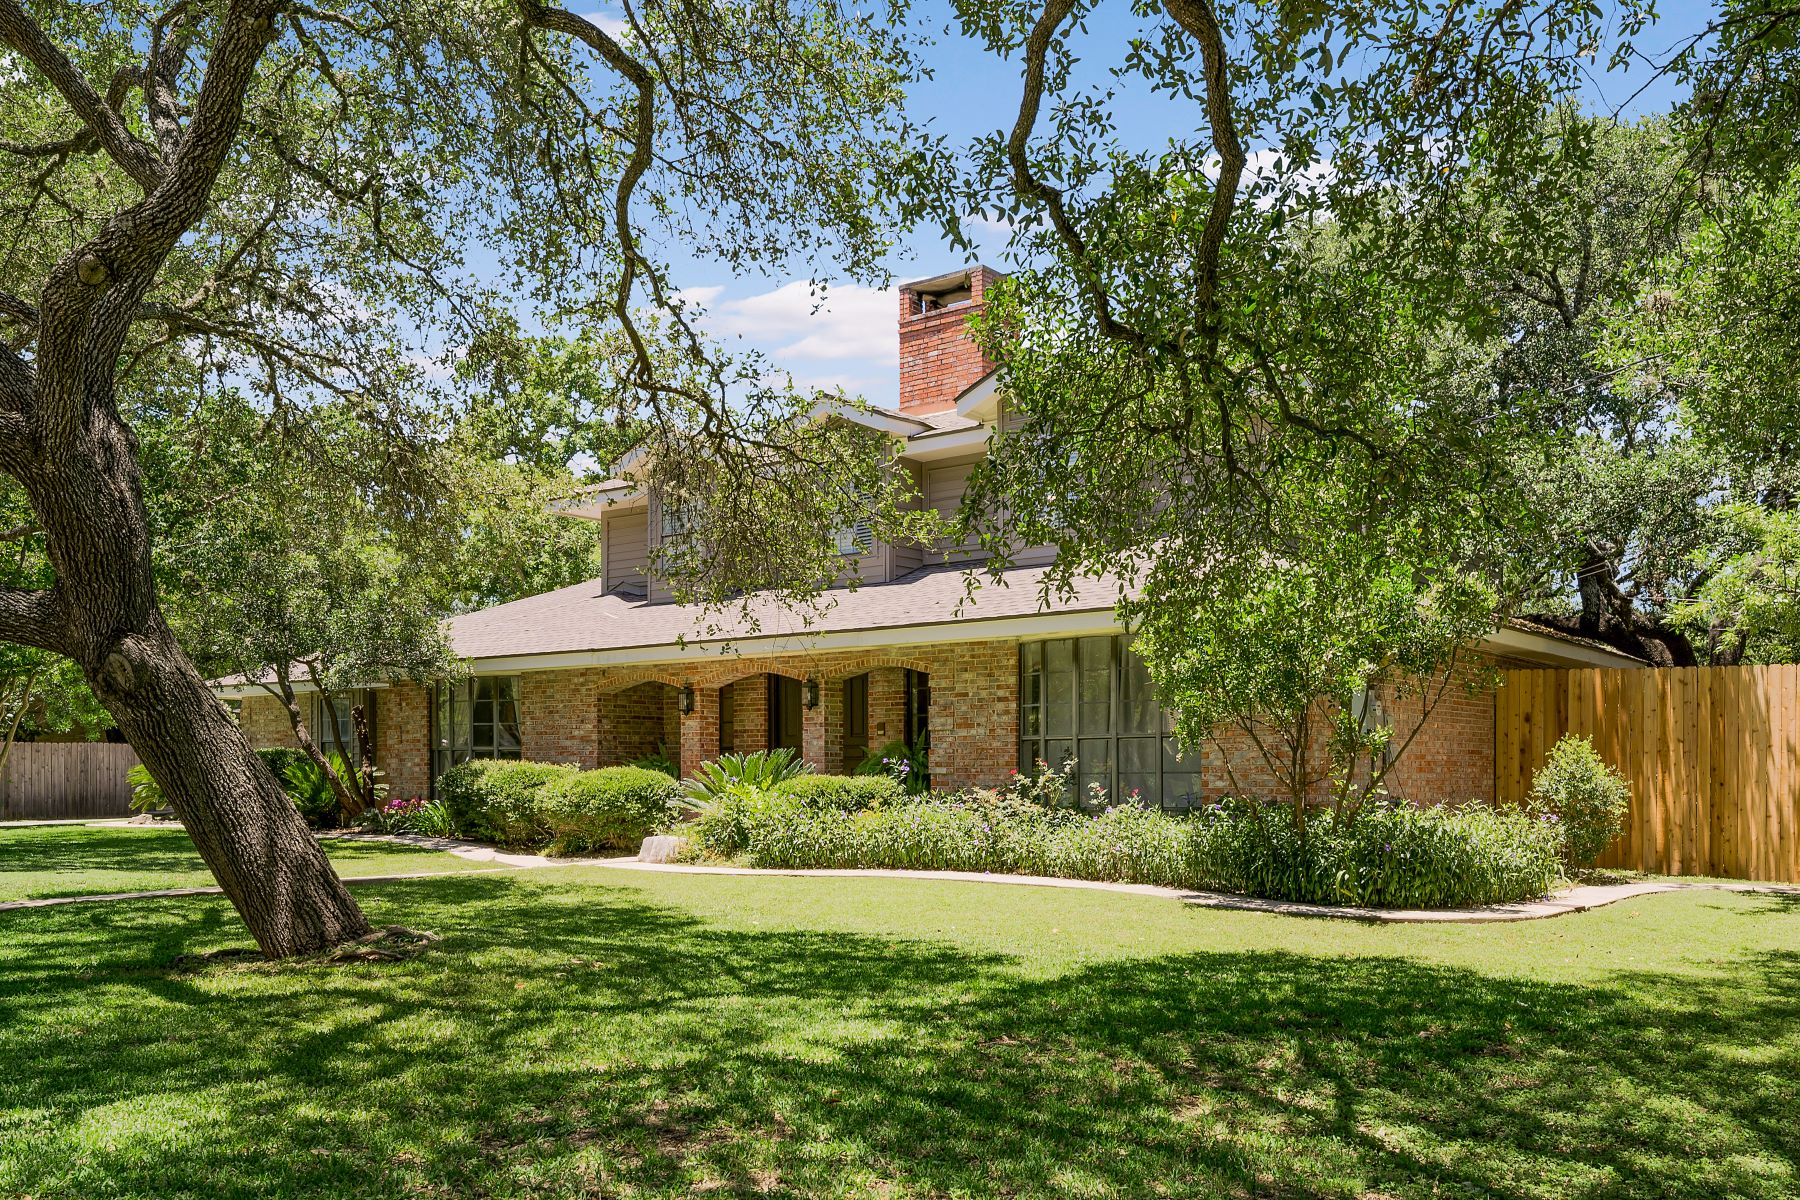 Single Family Homes for Sale at Stunning Home Nestled on a Large Oak Studded Lot 505 Sagecrest Drive, San Antonio, Texas 78232 United States